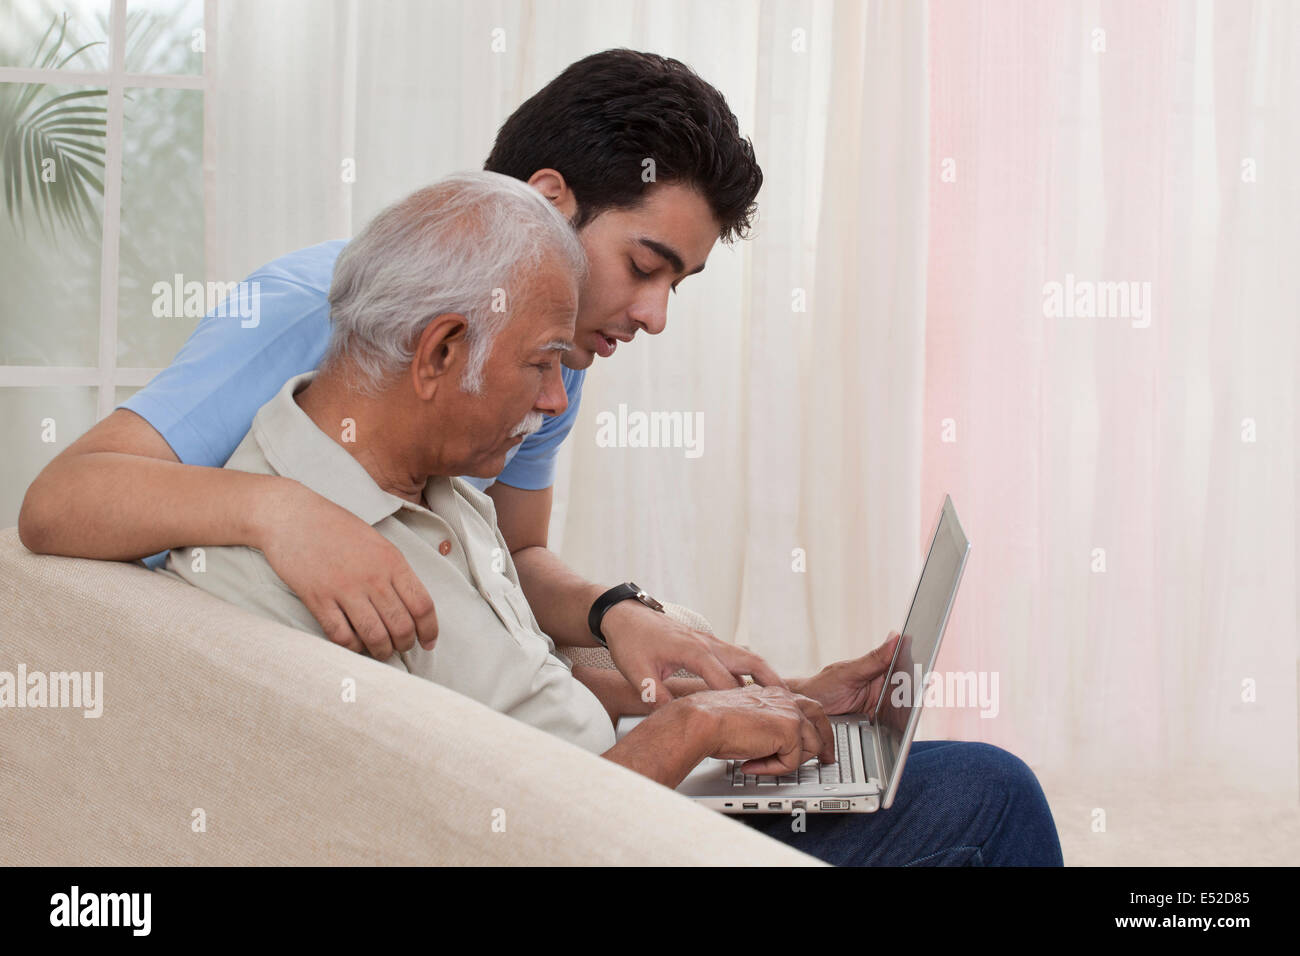 Grandson teaching grandfather how to operate laptop - Stock Image